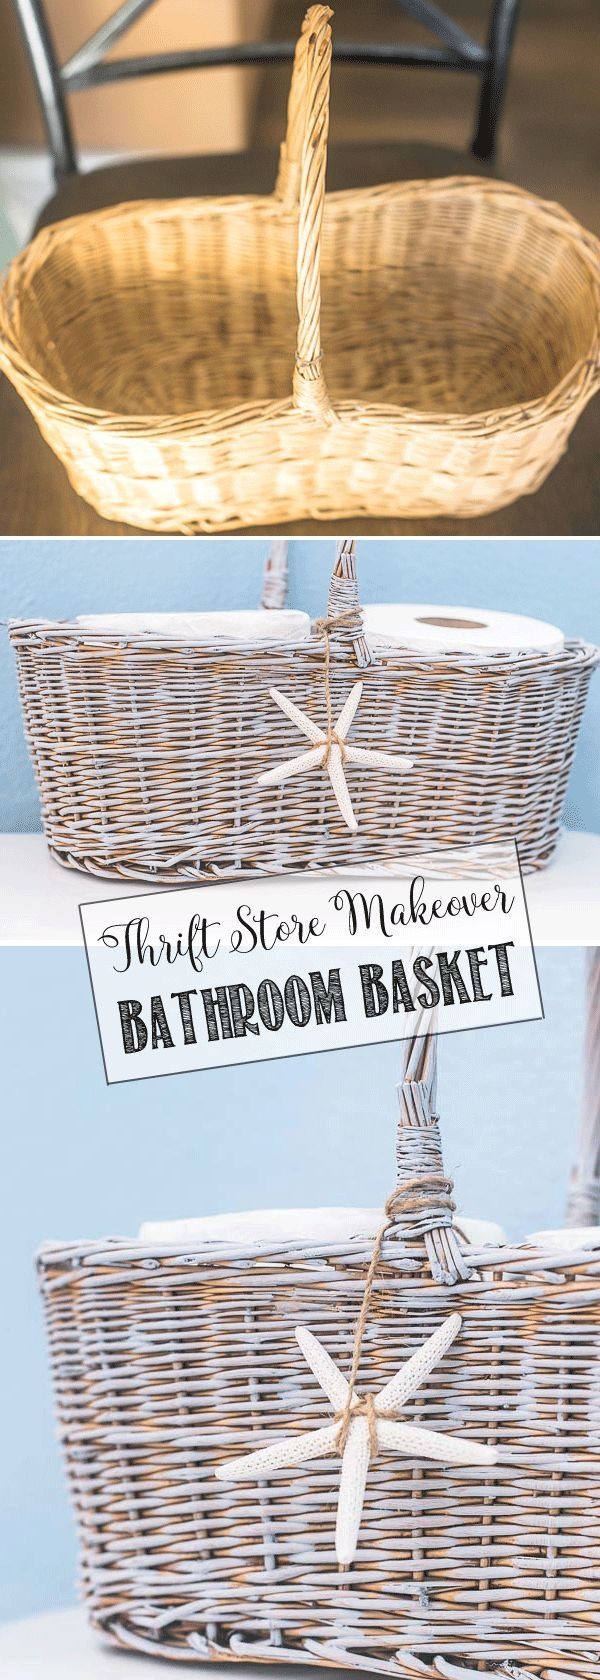 DIY Painted Toilet Paper Basket